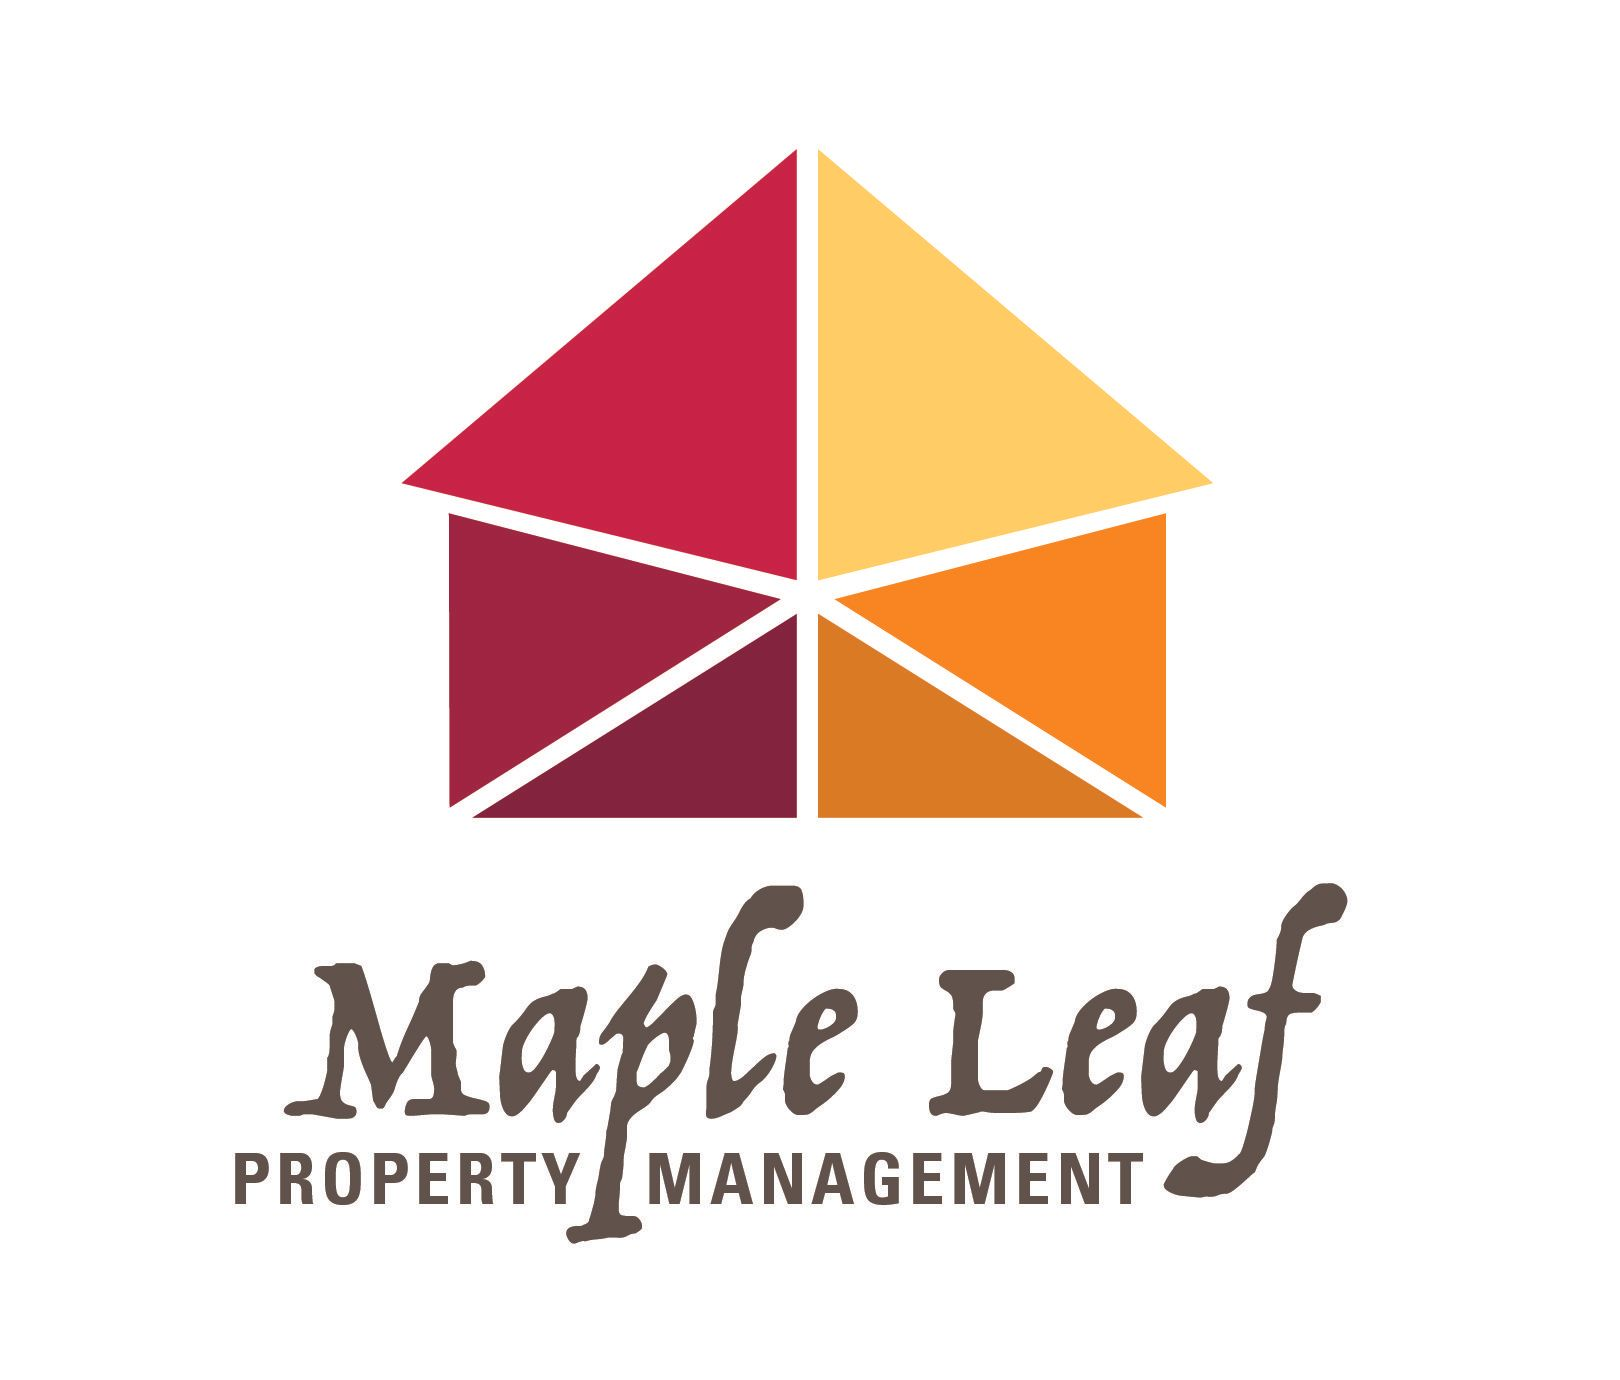 Leaf property investments skandia investment solutions charges dropped